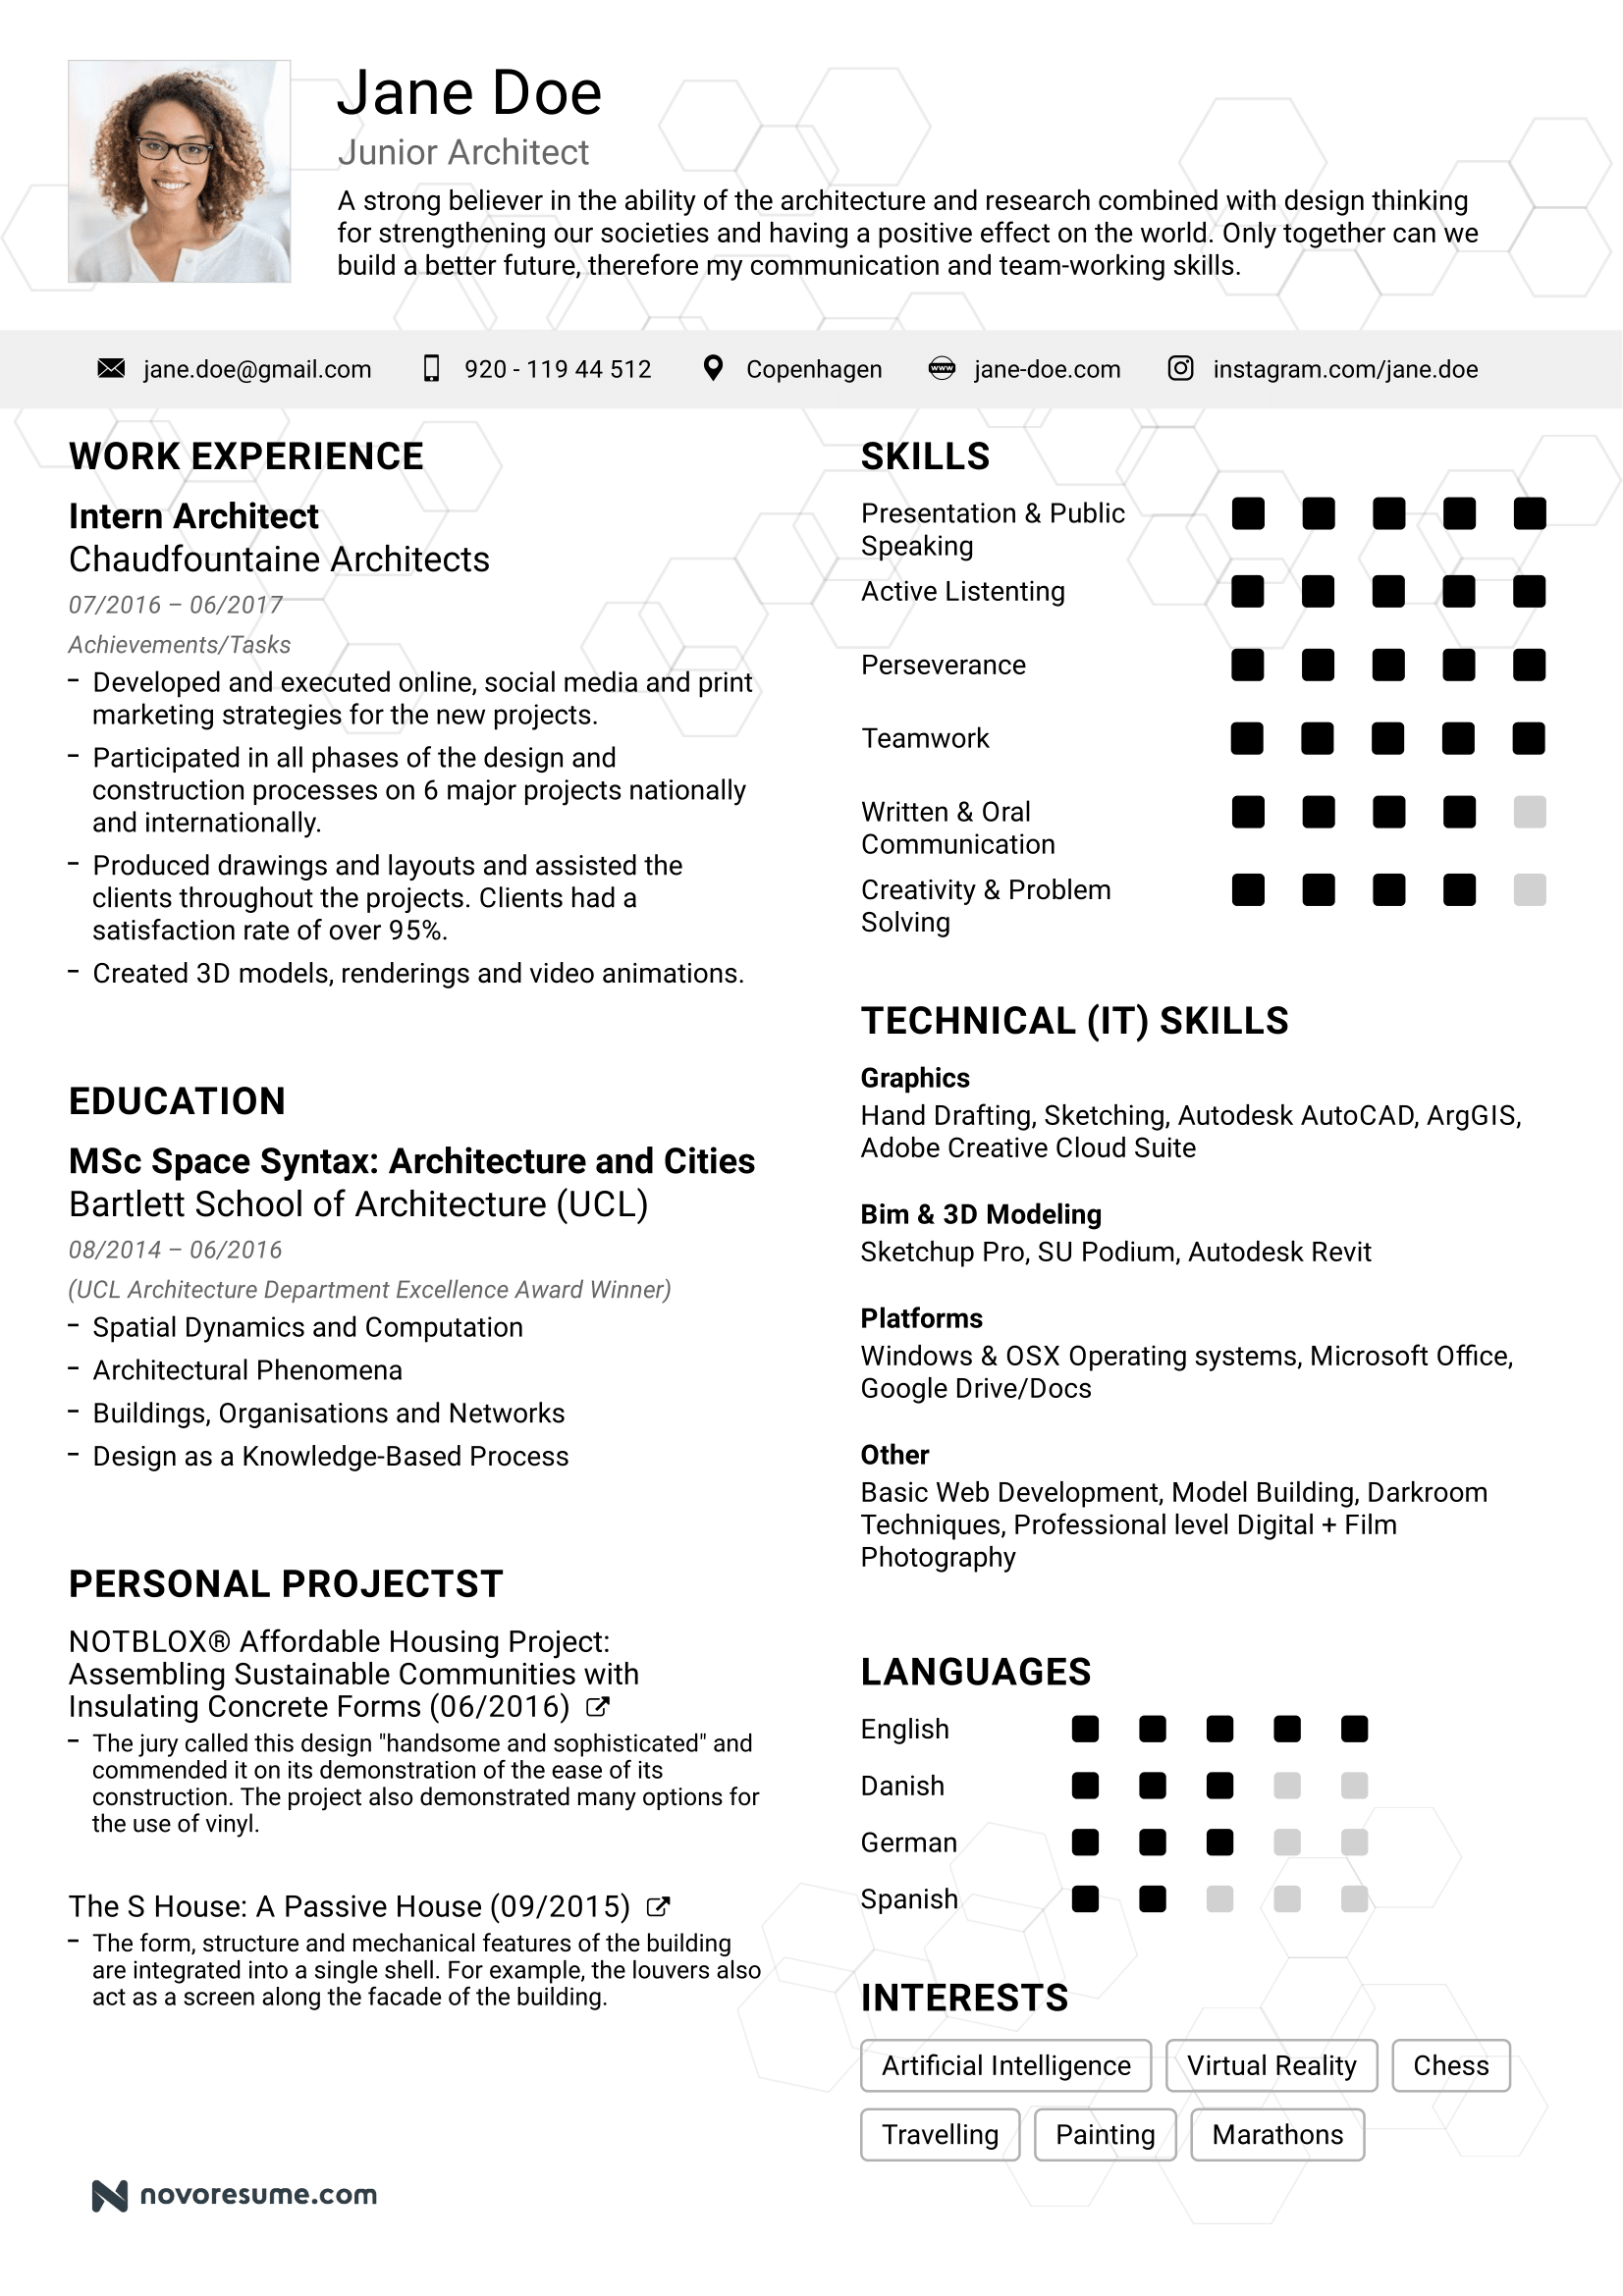 Resume Examples for Your 2020 Job Application